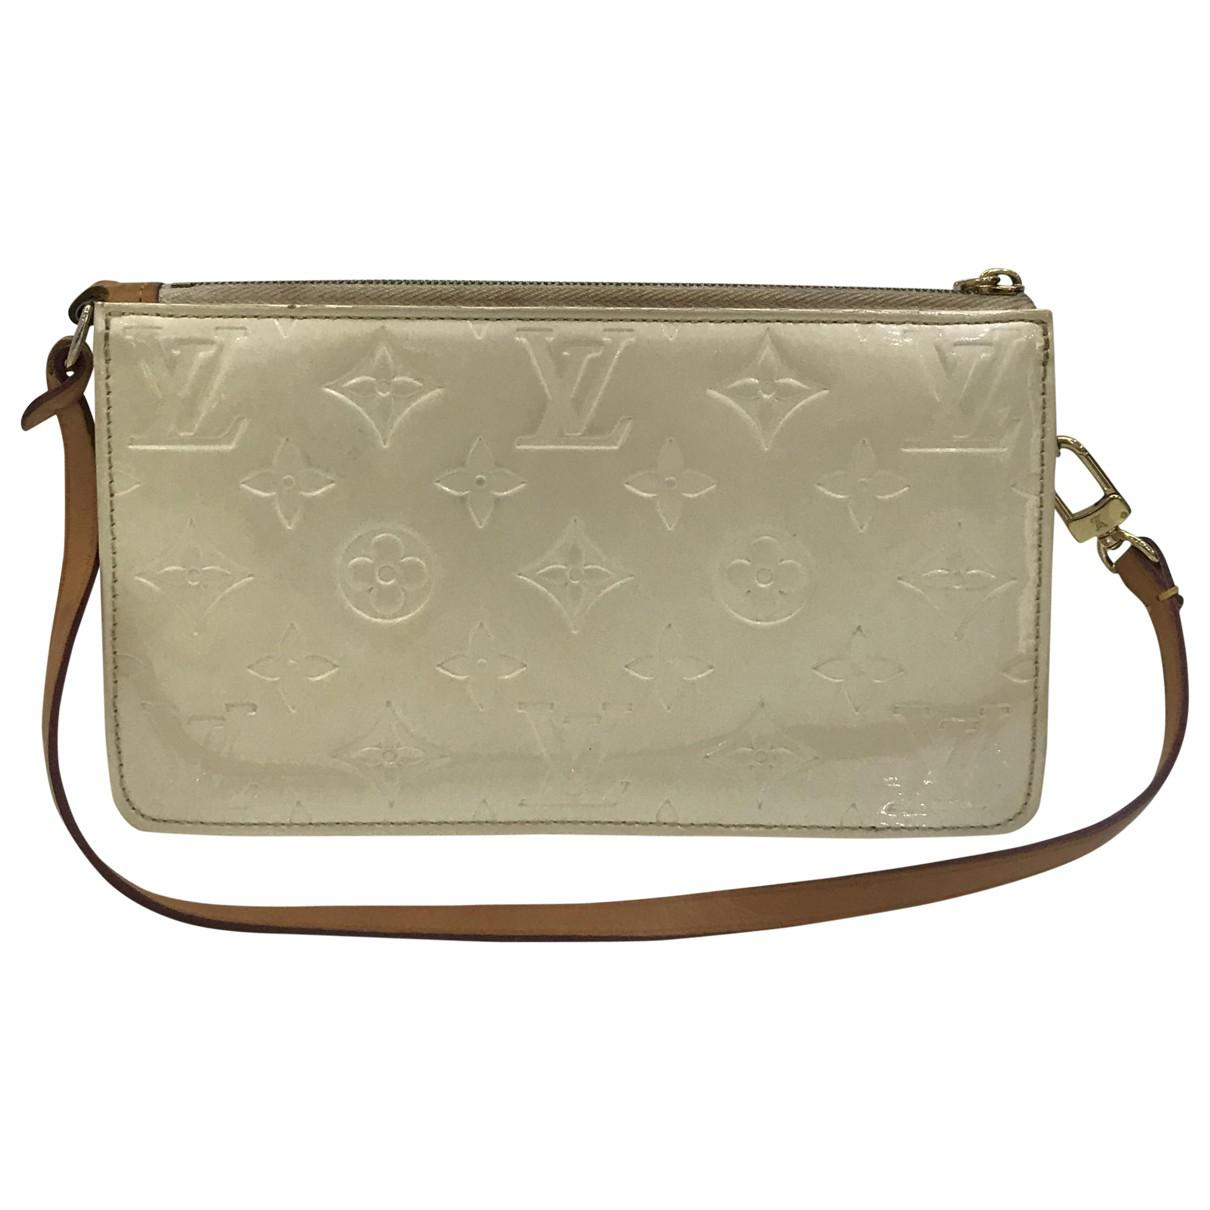 fccd9237d Lyst - Louis Vuitton Patent Leather Handbag in Natural